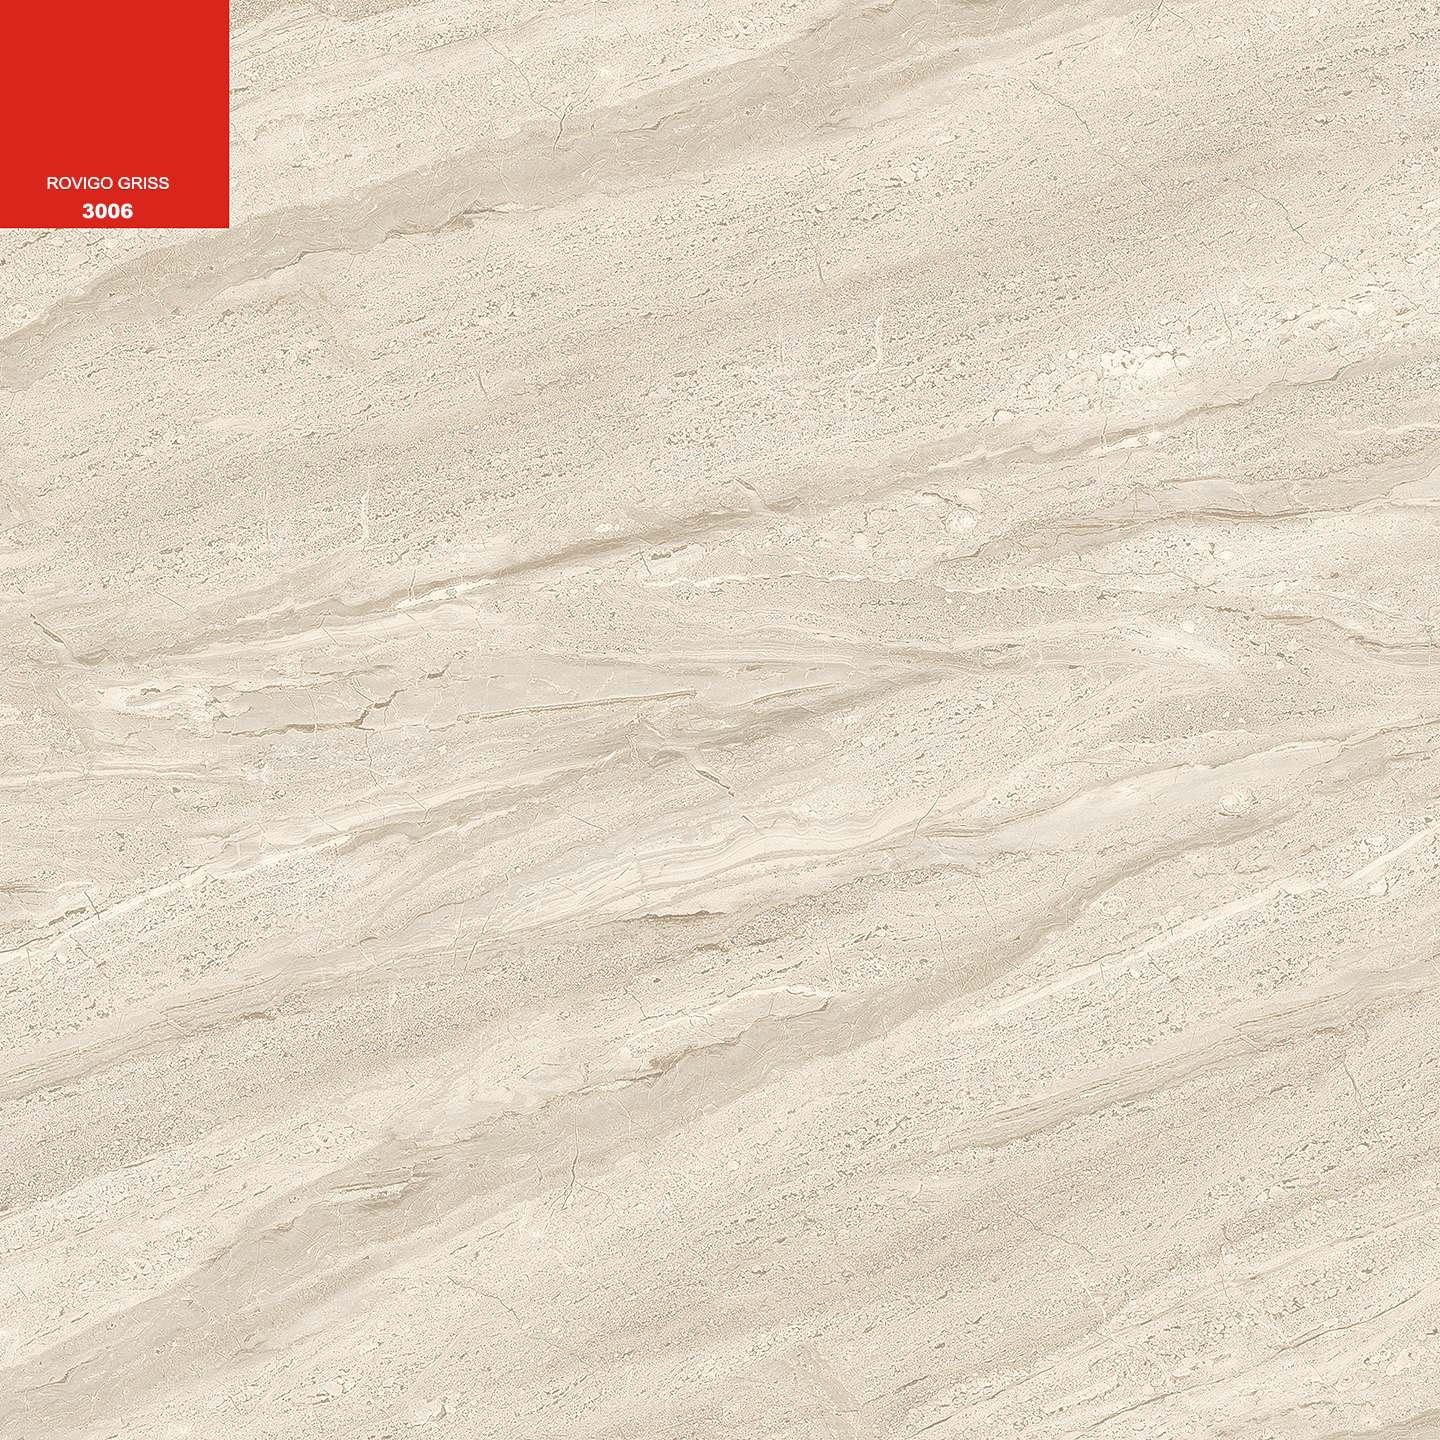 Vitrified floor tiles lycos ceramic in rajkot india vitrified floor tiles we are highly reckoned manufacturer supplier and exporter of all elegant range dailygadgetfo Gallery